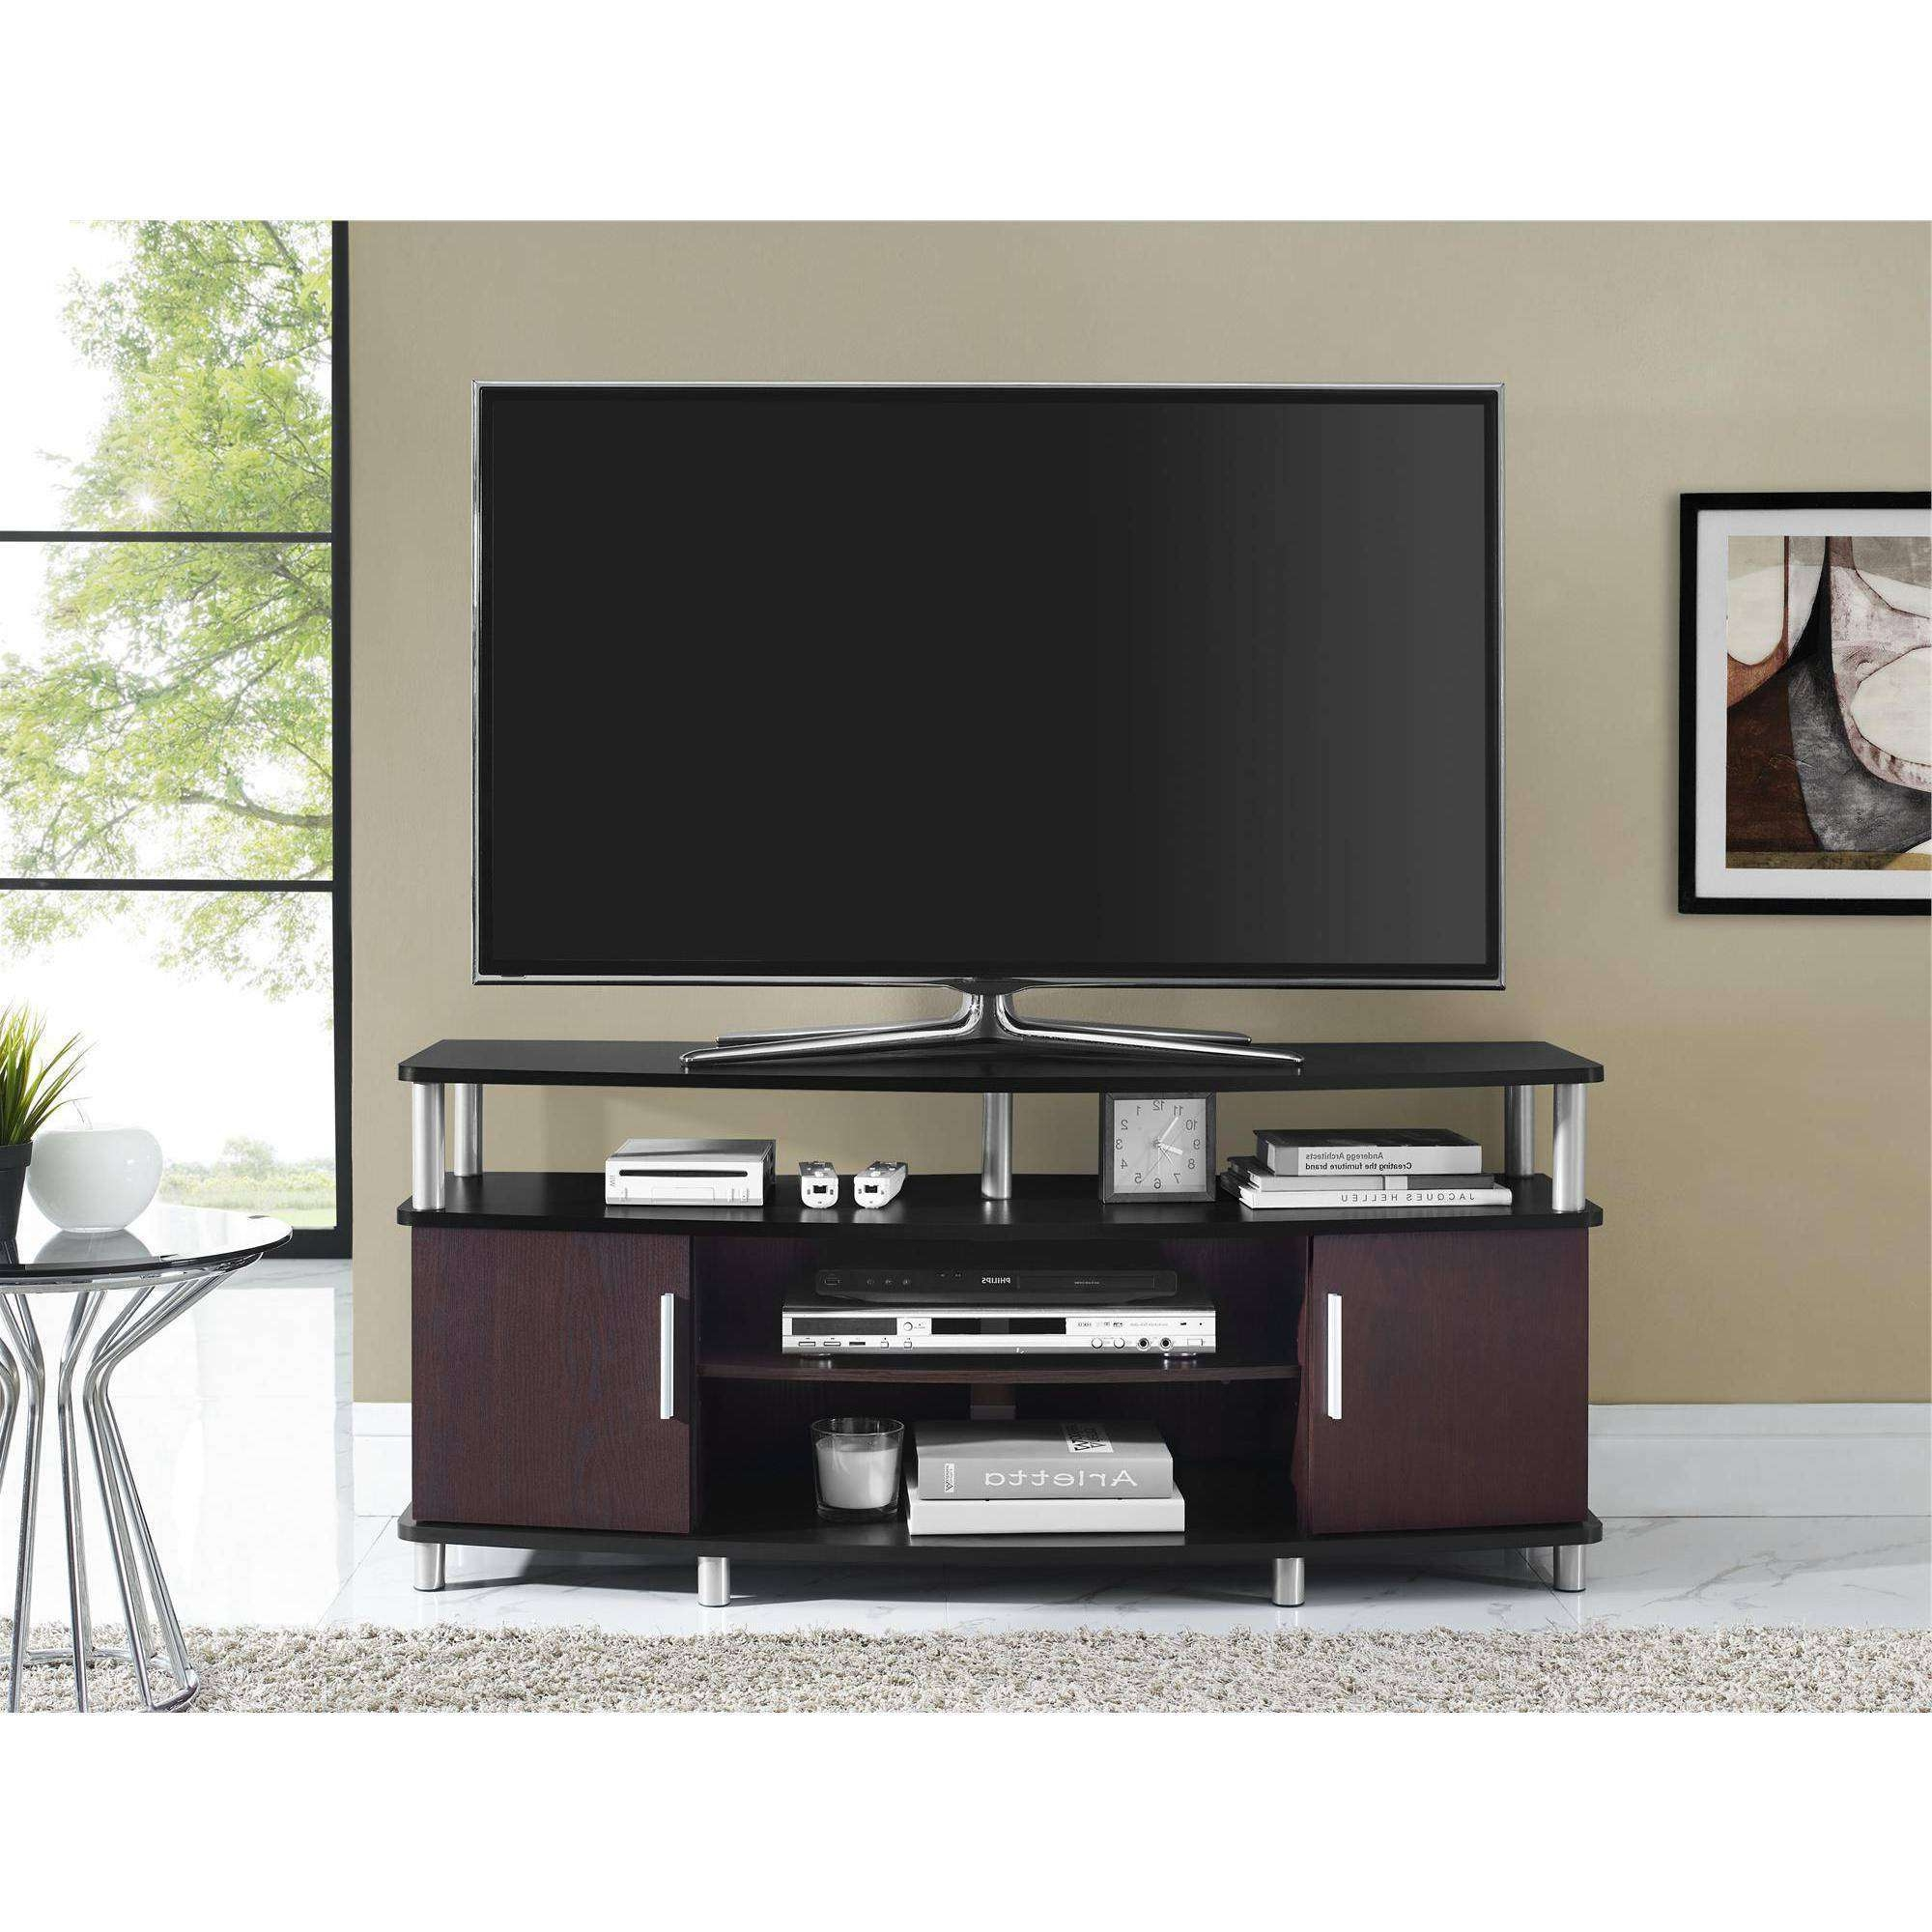 Tv Stand : Dreaded Corner Tv Stand Images Design Stands Stirring Intended For Corner Tv Stands For 50 Inch Tv (View 13 of 20)